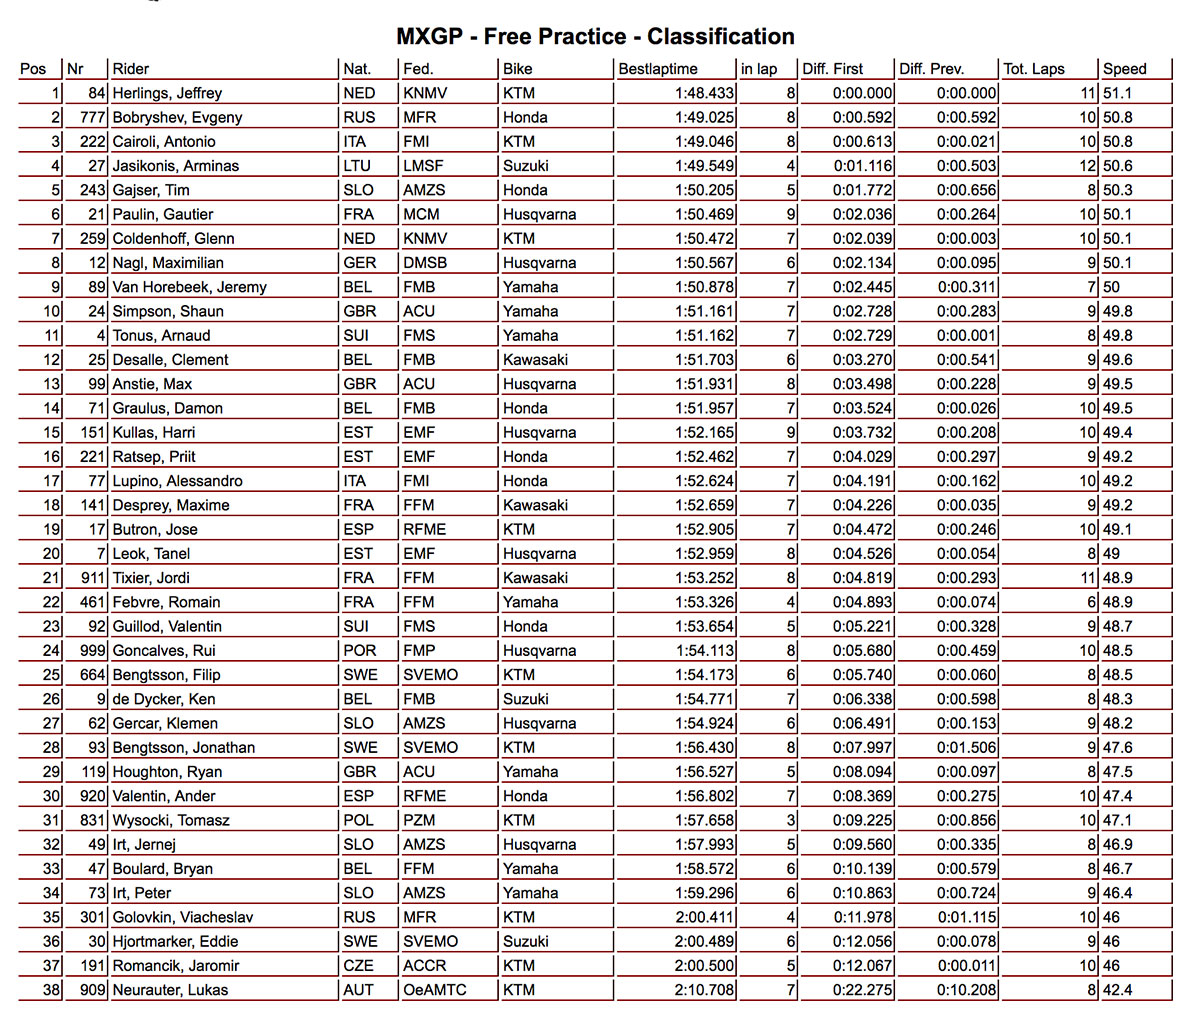 MX1latviafree